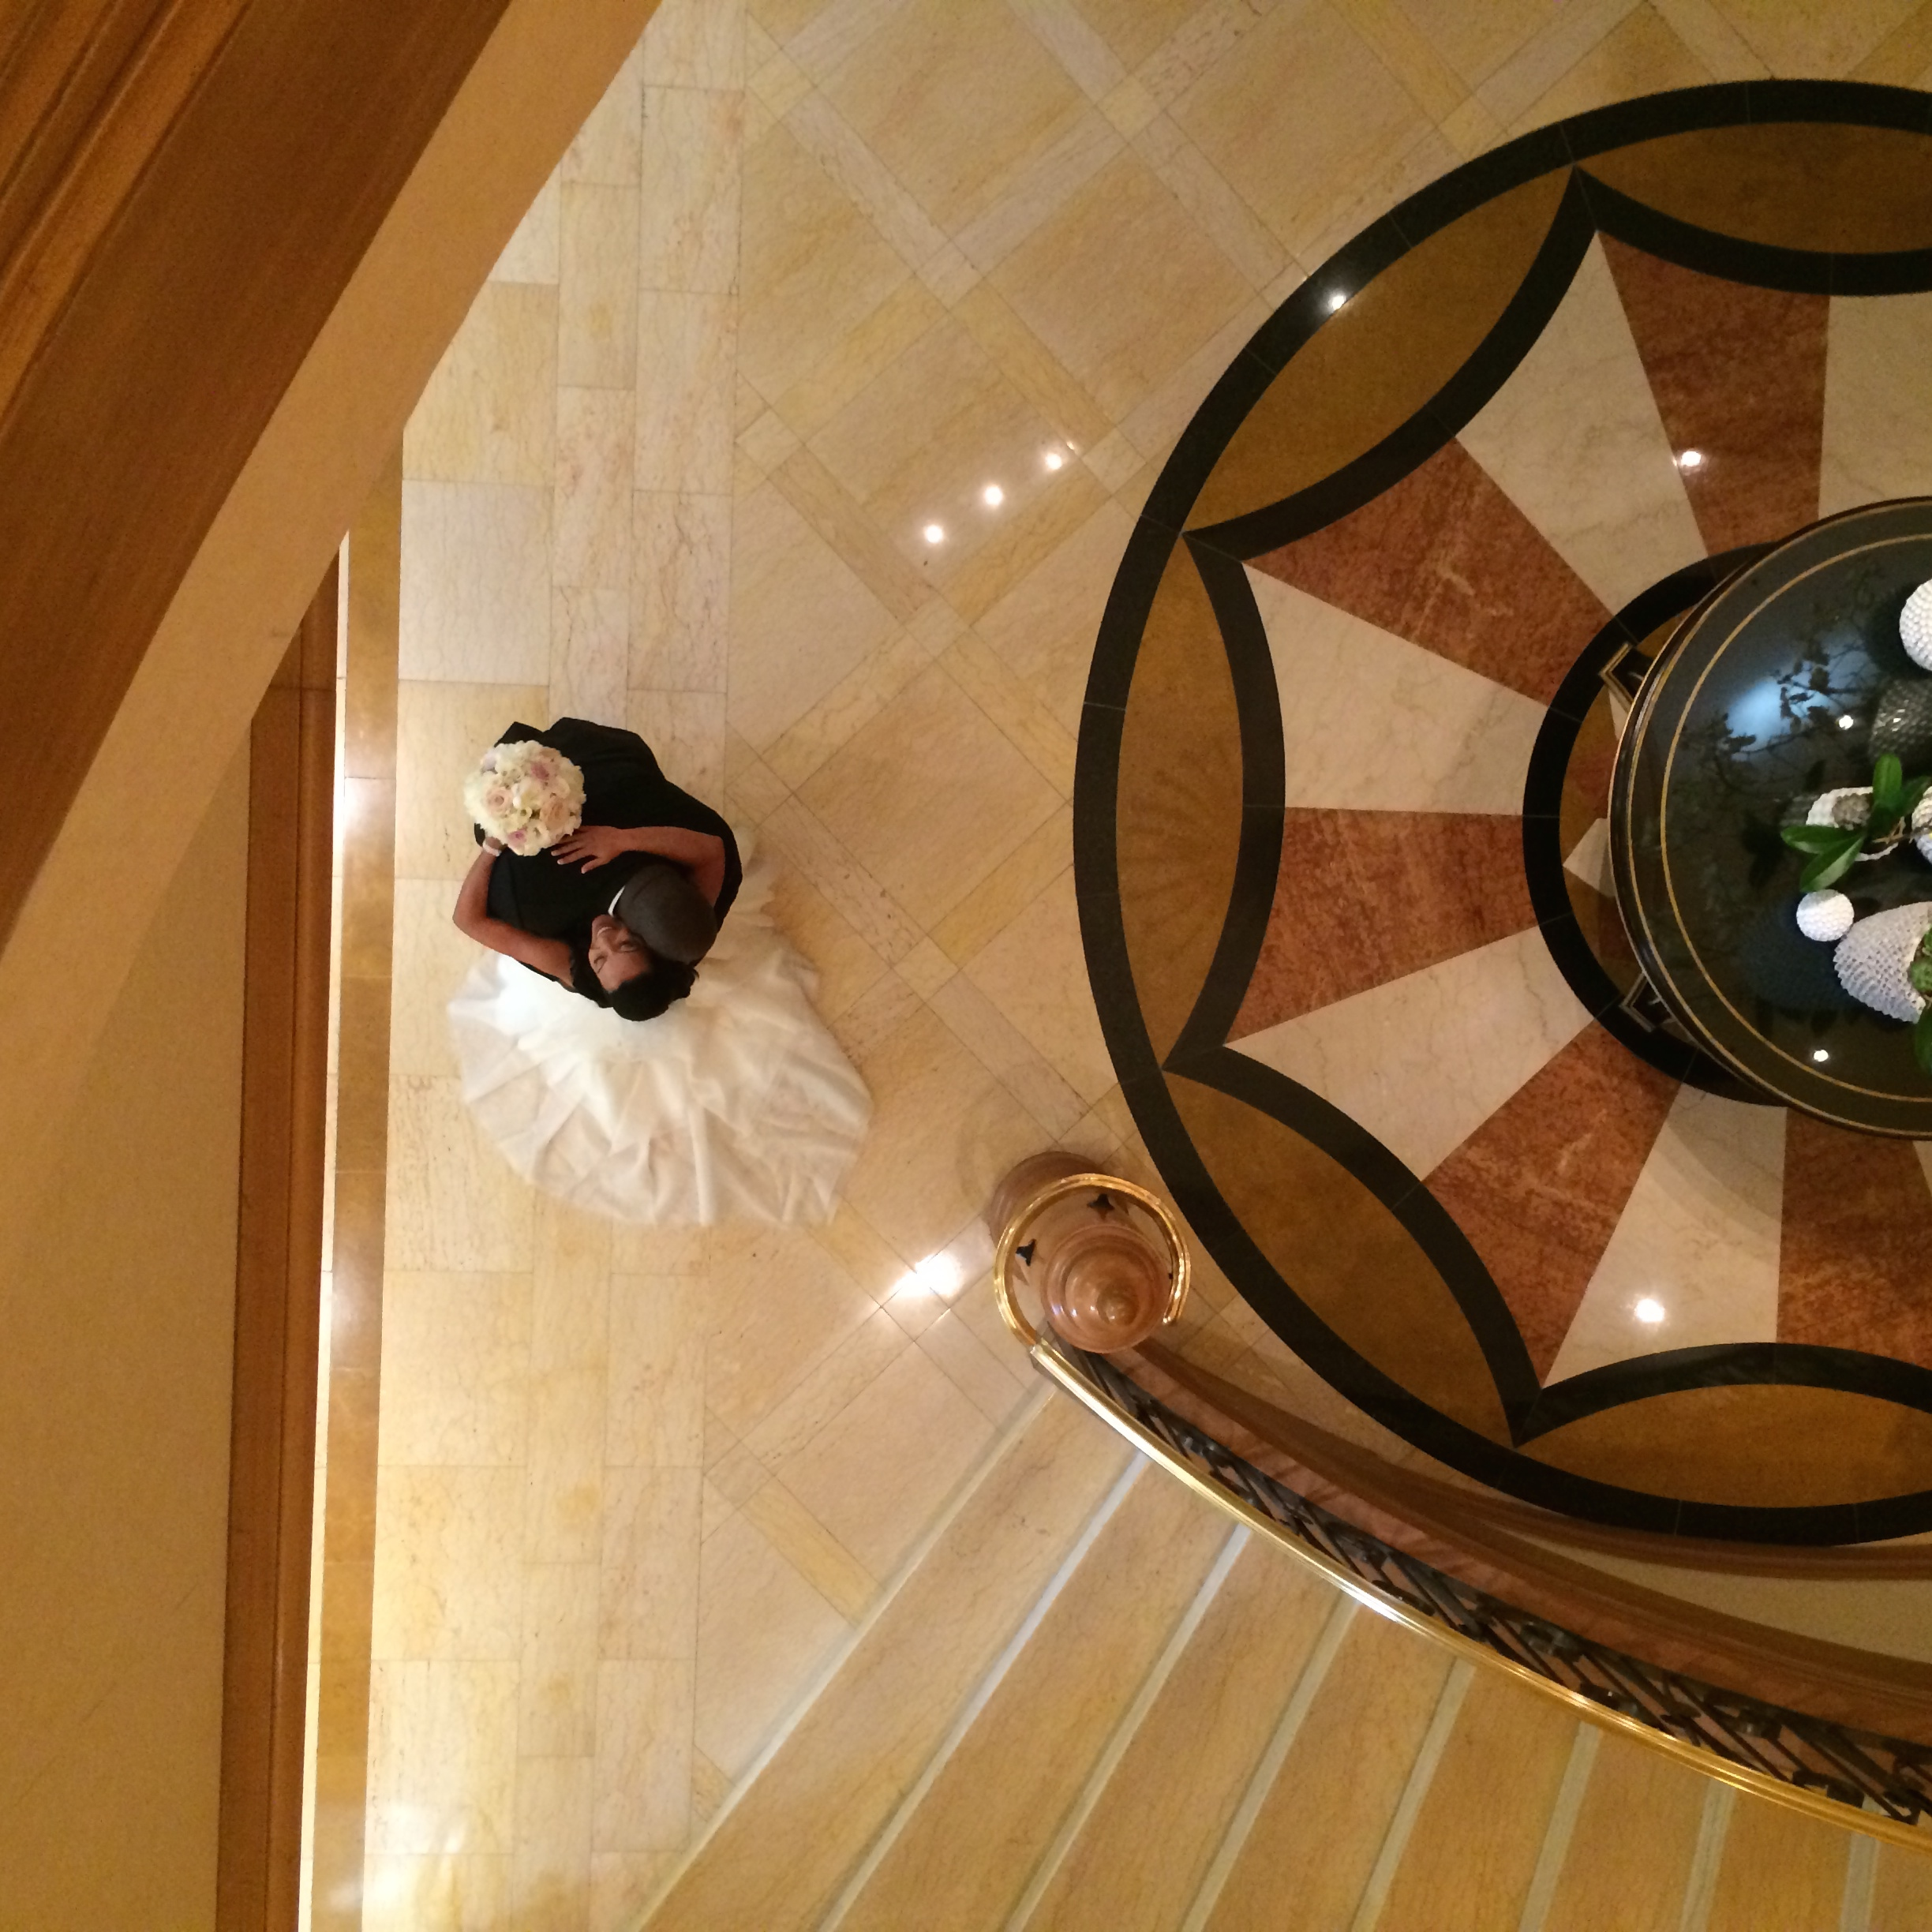 The First Look at the base of the stair case at  The Four Seasons Las Vegas.